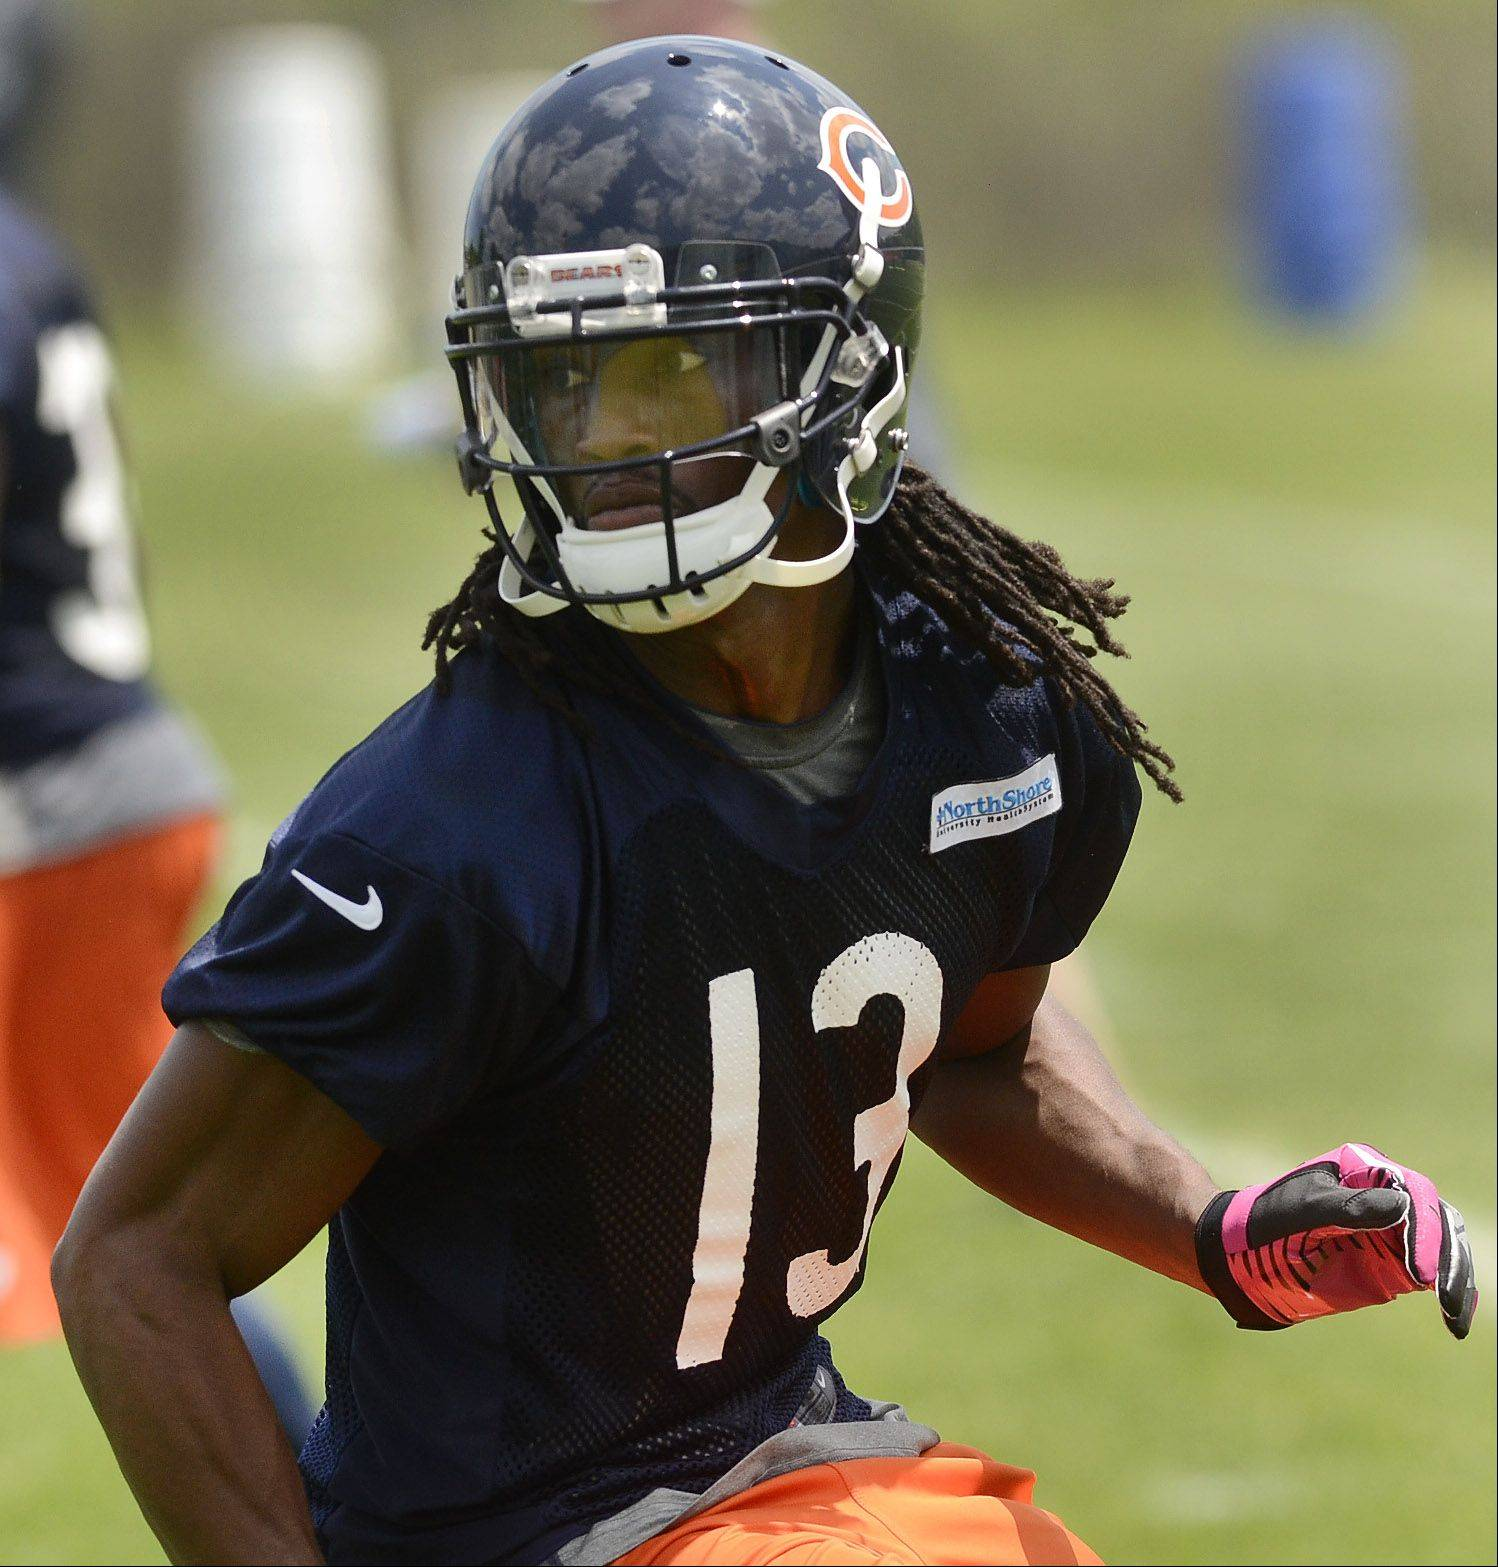 Wide receiver Devin Aromashodu was among the 14 players released by the Bears on Sunday.